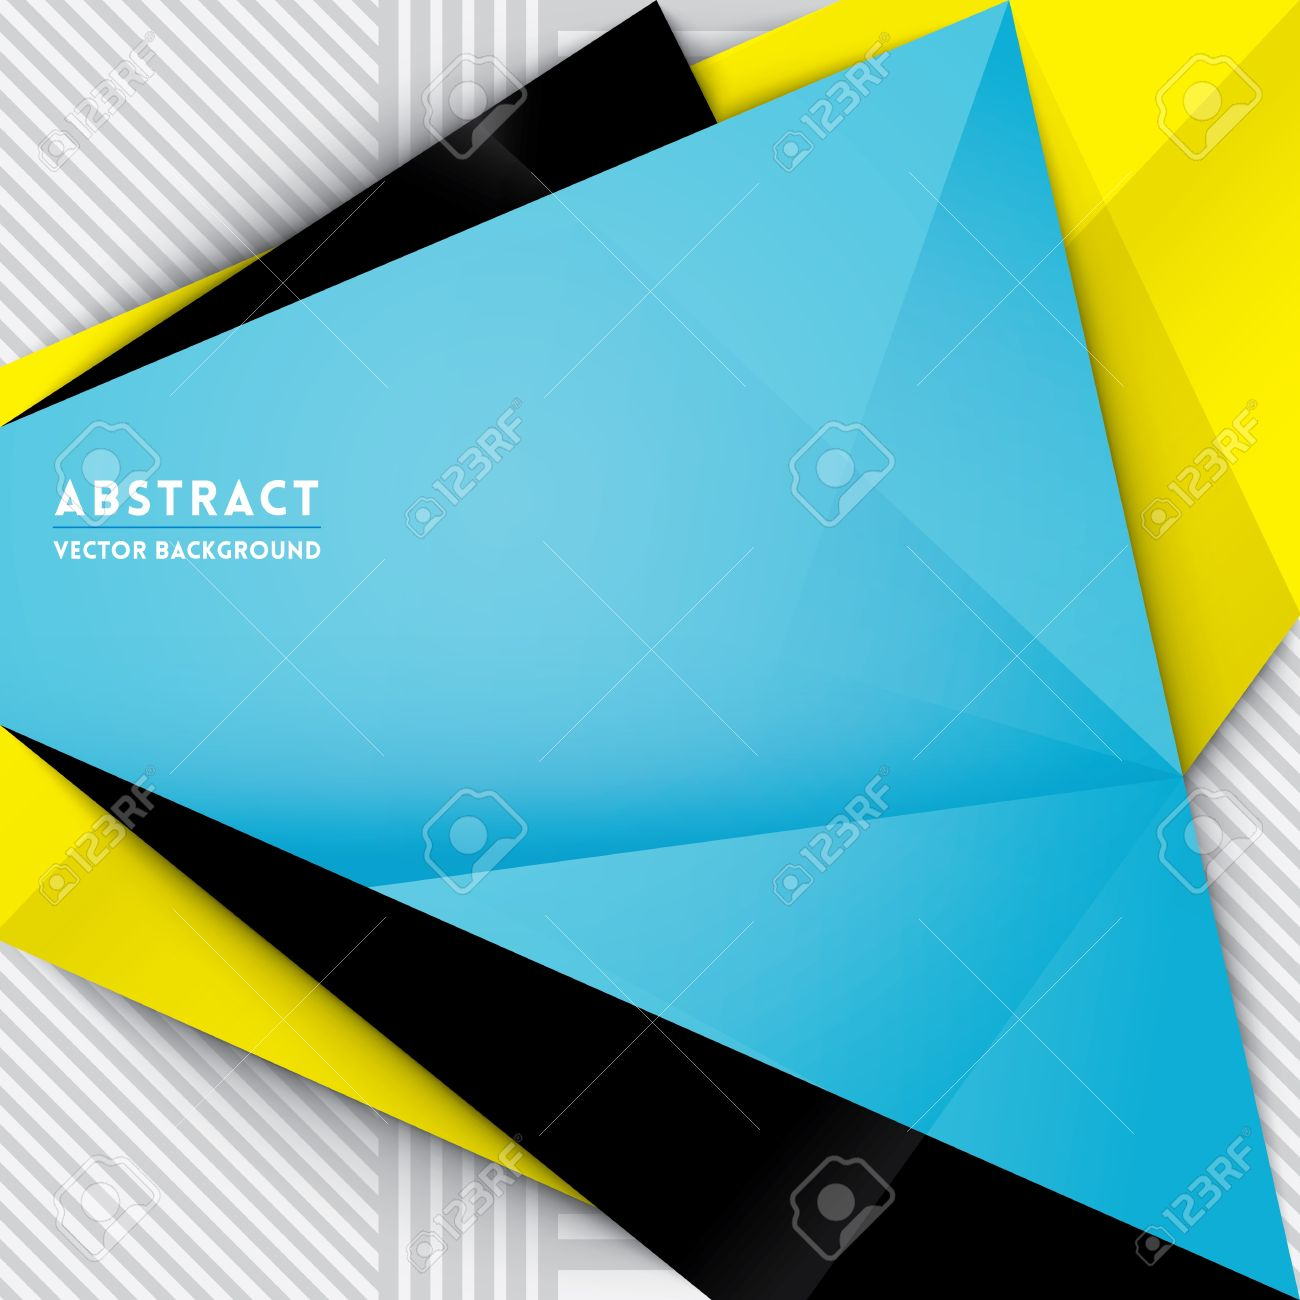 abstract triangle shape background for web design print